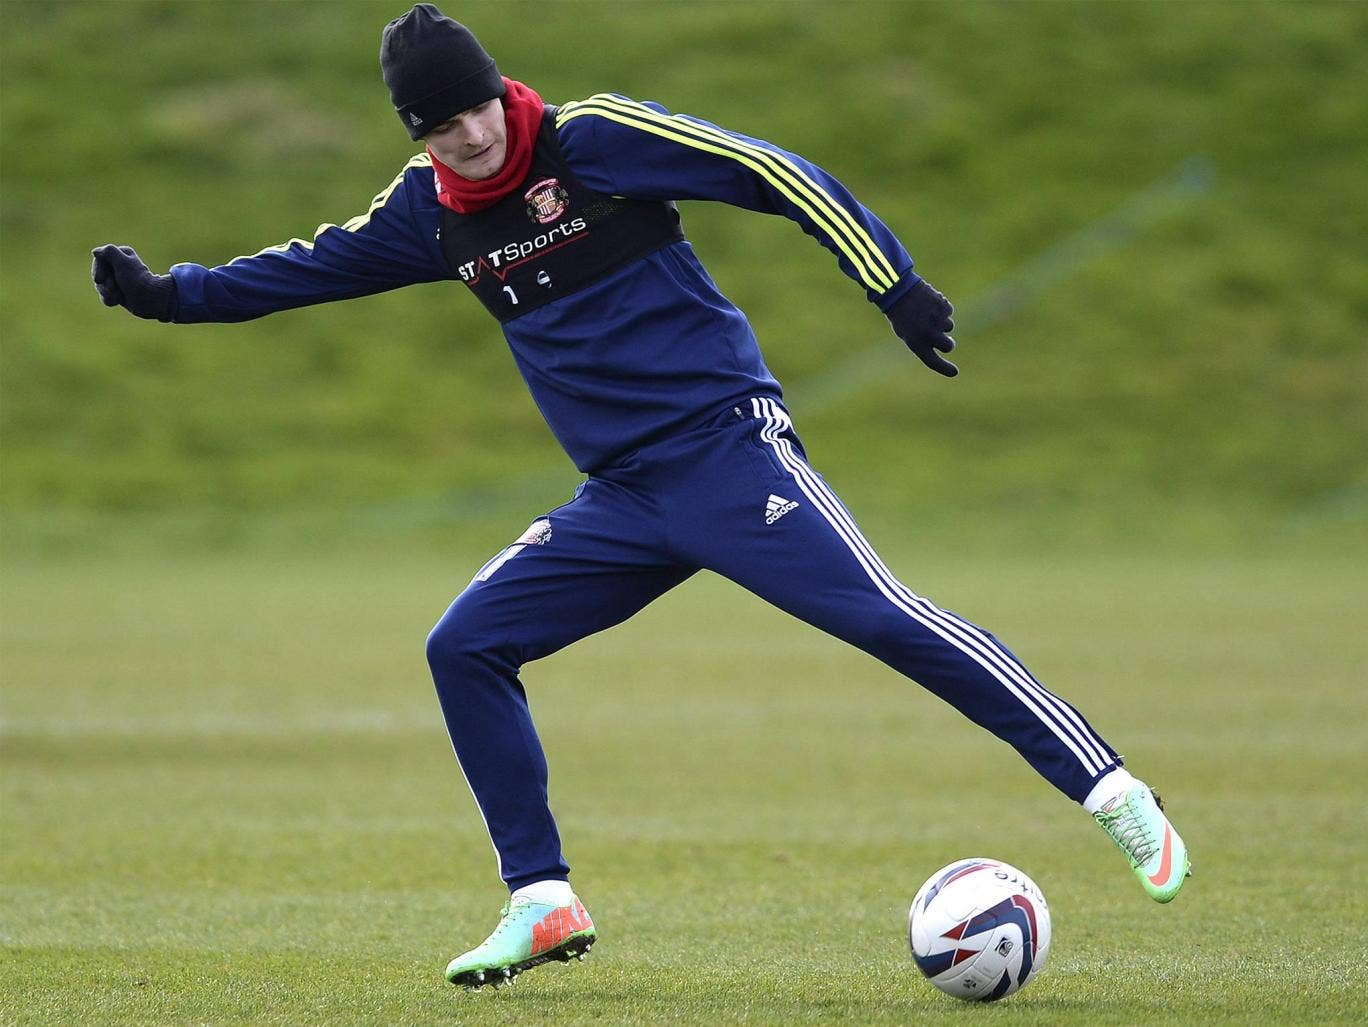 Adam Johnson controls the ball during a training session with Sunderland